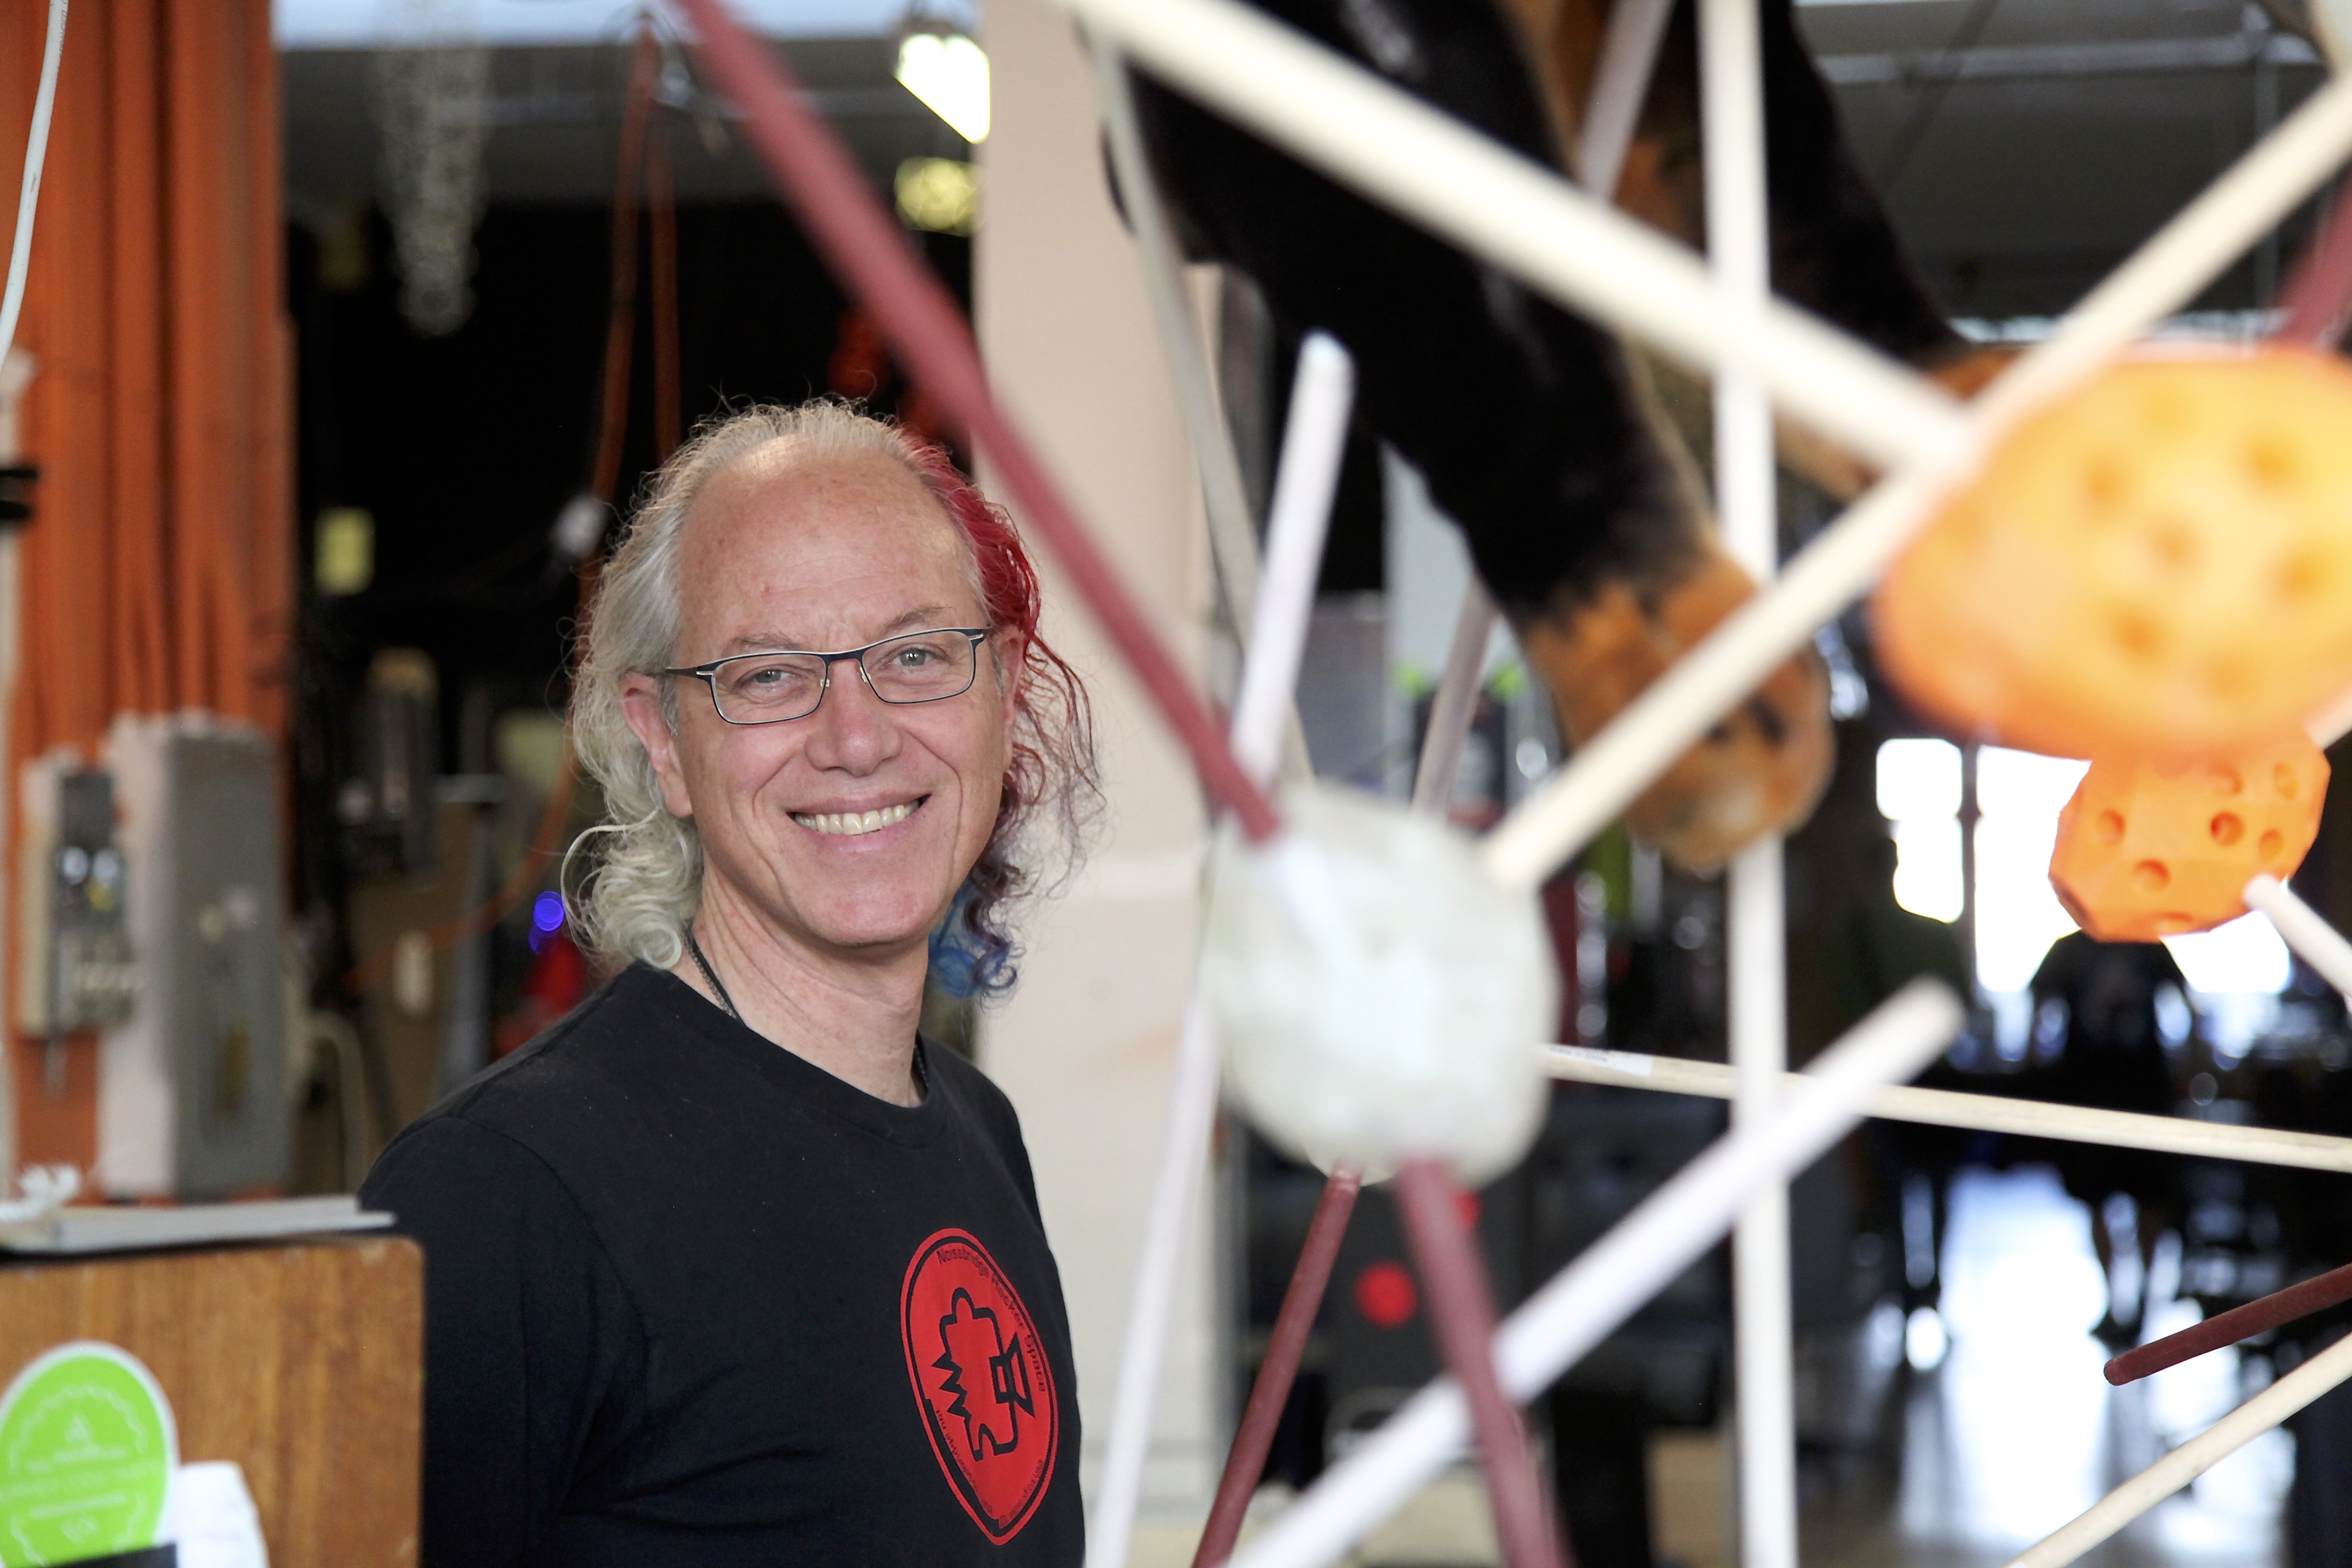 Mitch Altman is a hacker, inventor and co-founder of Noisebridge. He's considered a pioneer of virtual reality. Photo by Signe Brewster